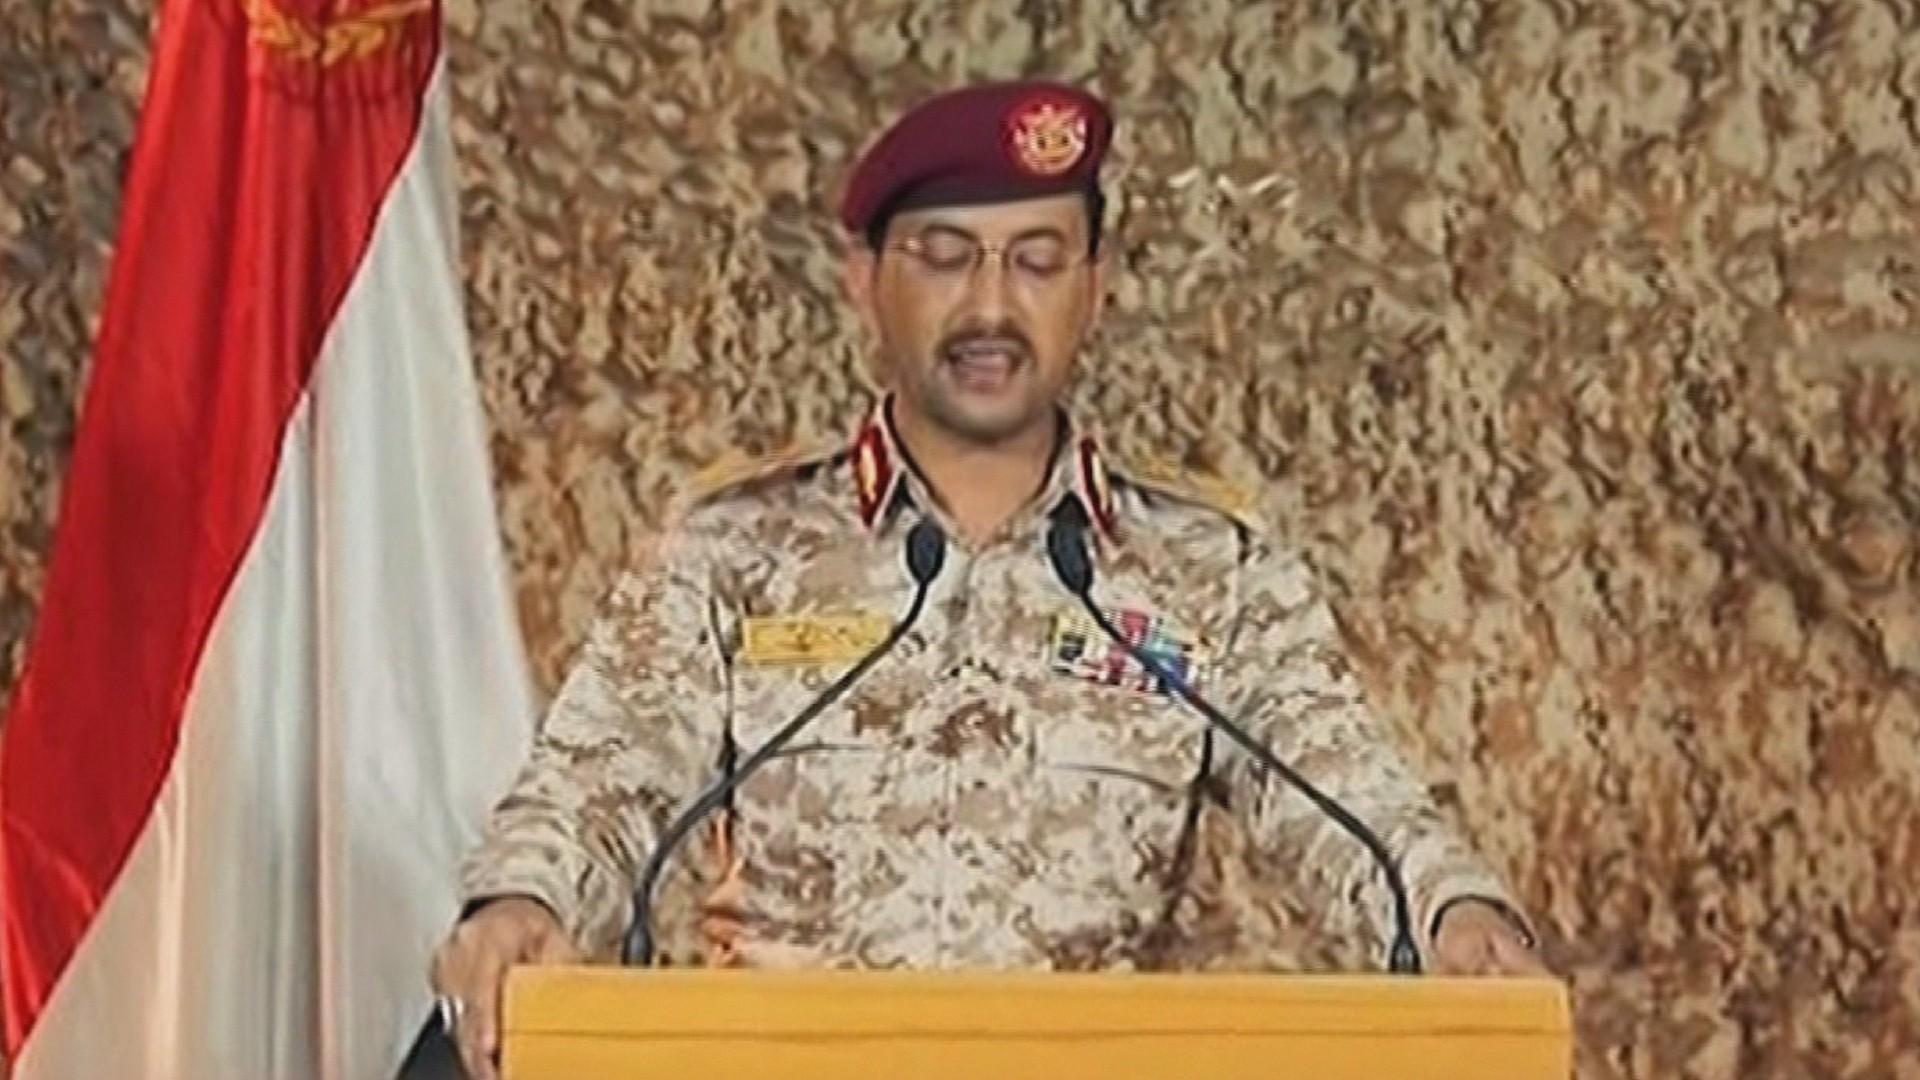 665003303001 6090270206001 6090265409001 vs - Yemen: Houthis Claim Capture of Thousands of Troops in Saudi Raid